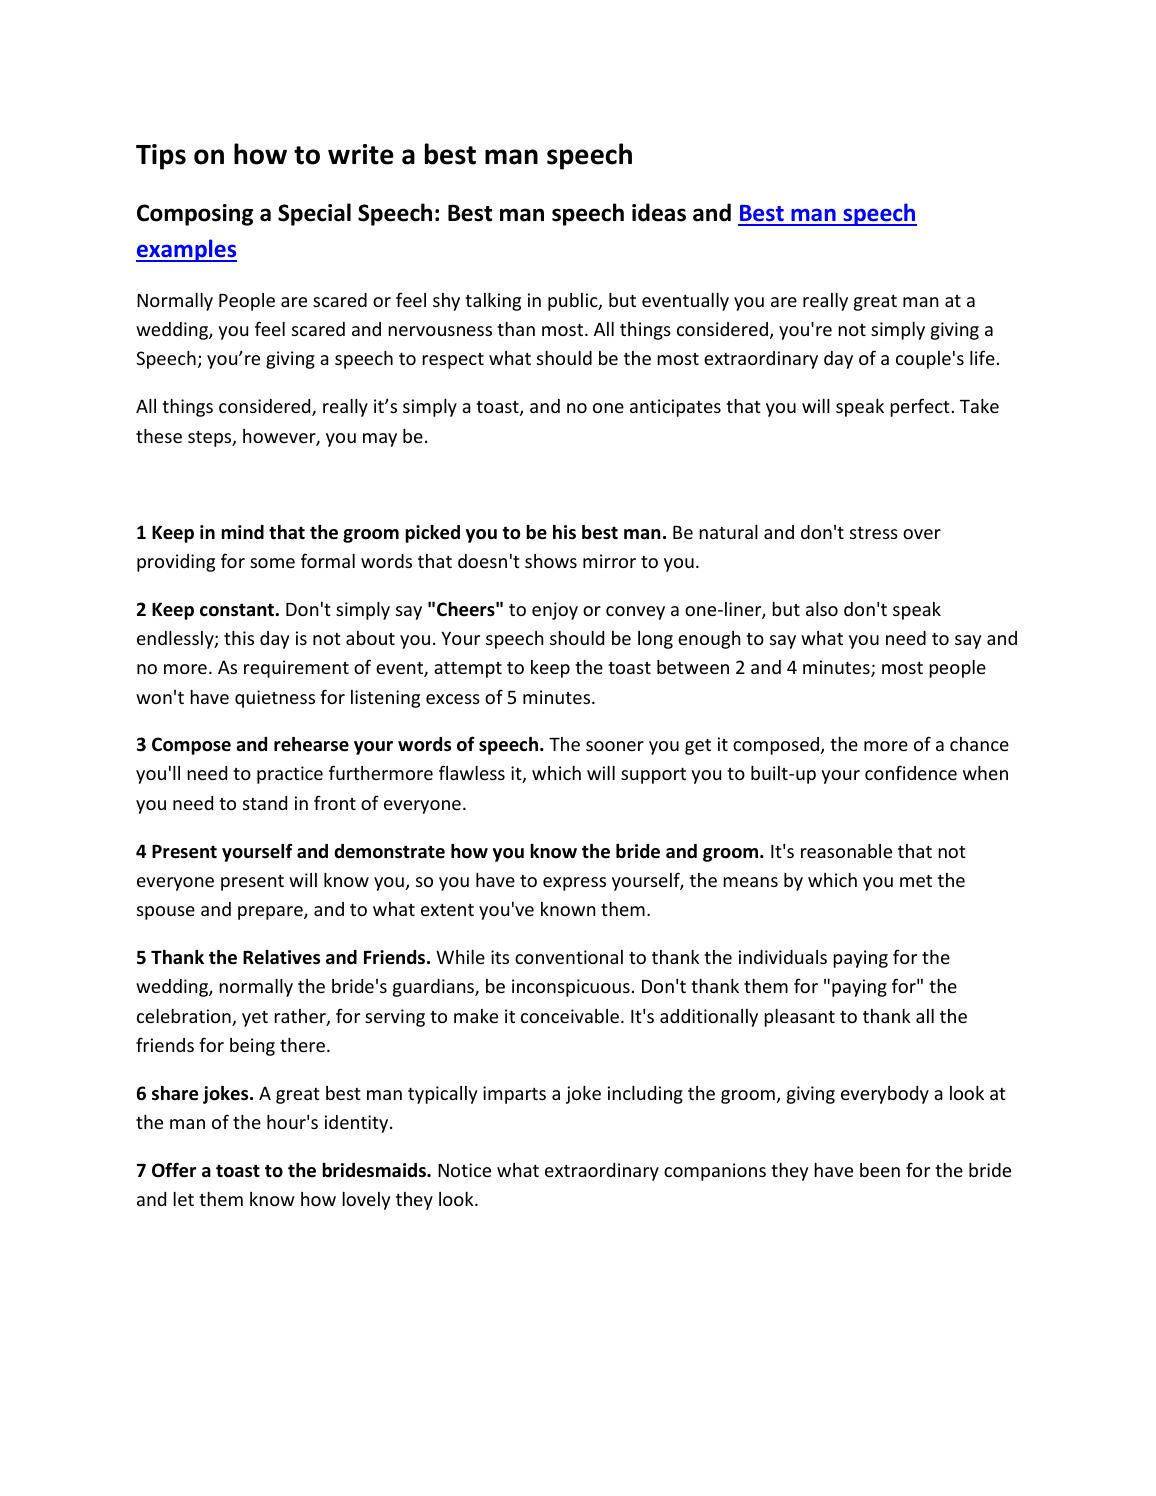 Gracious Ny Marriage Quotes Speeches By Davide Urman Issuu Man Speech Examples Bror Short Man Speech Examples Bror inspiration Best Man Speech Examples